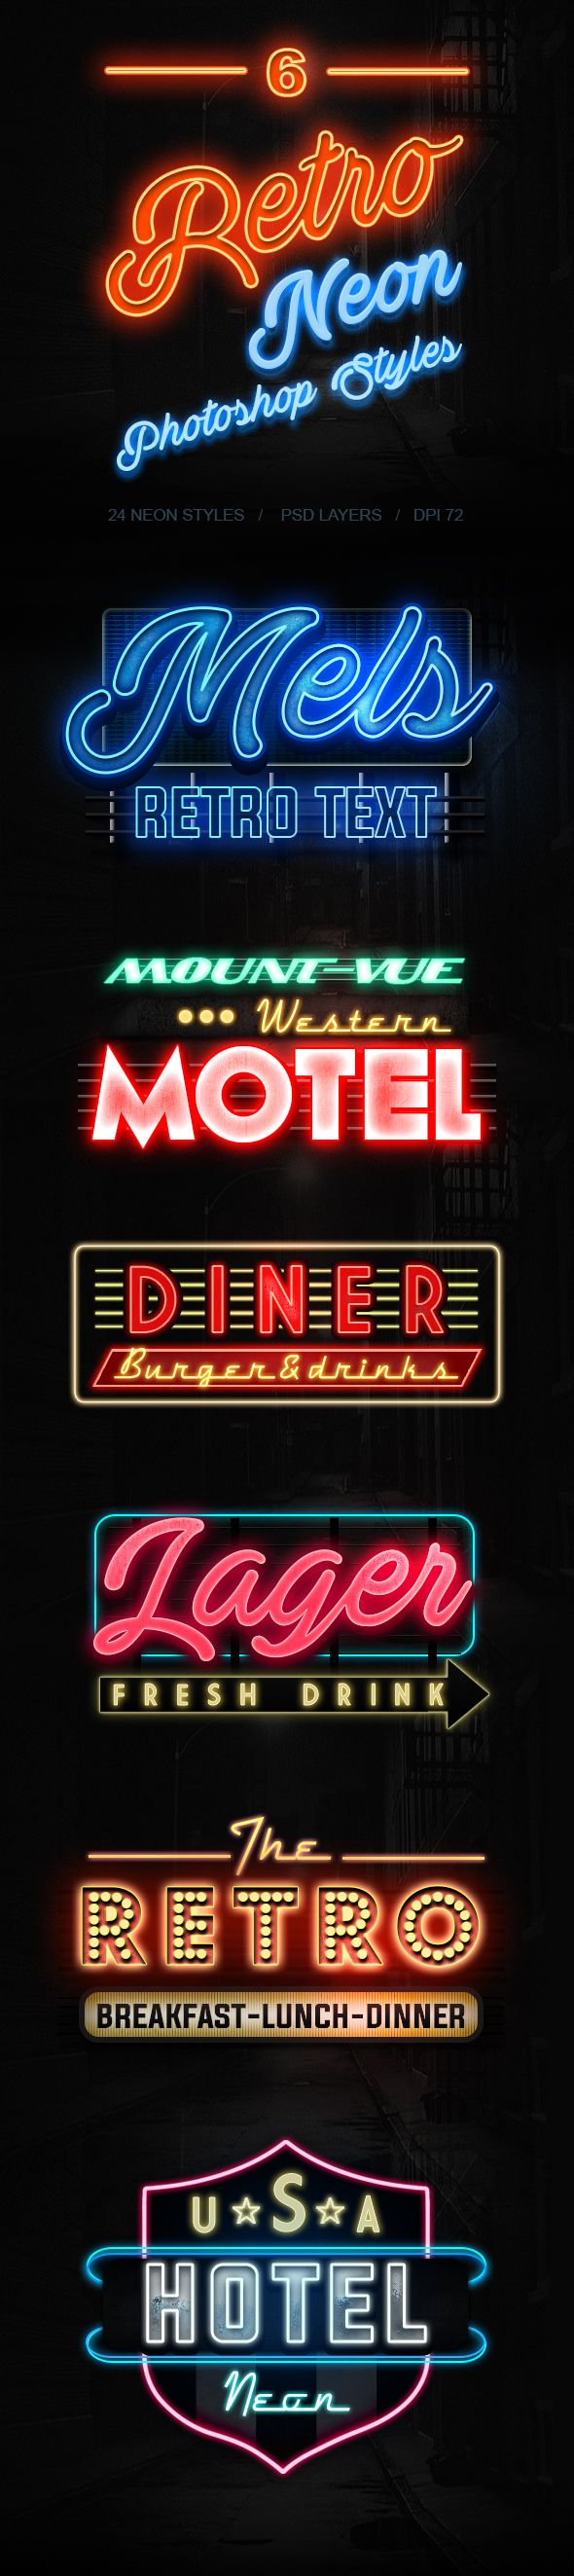 6 Retro Neon Styles for Illustrator. Download here: https://graphicriver.net/item/6-retro-neon-styles/17313857?ref=ksioks